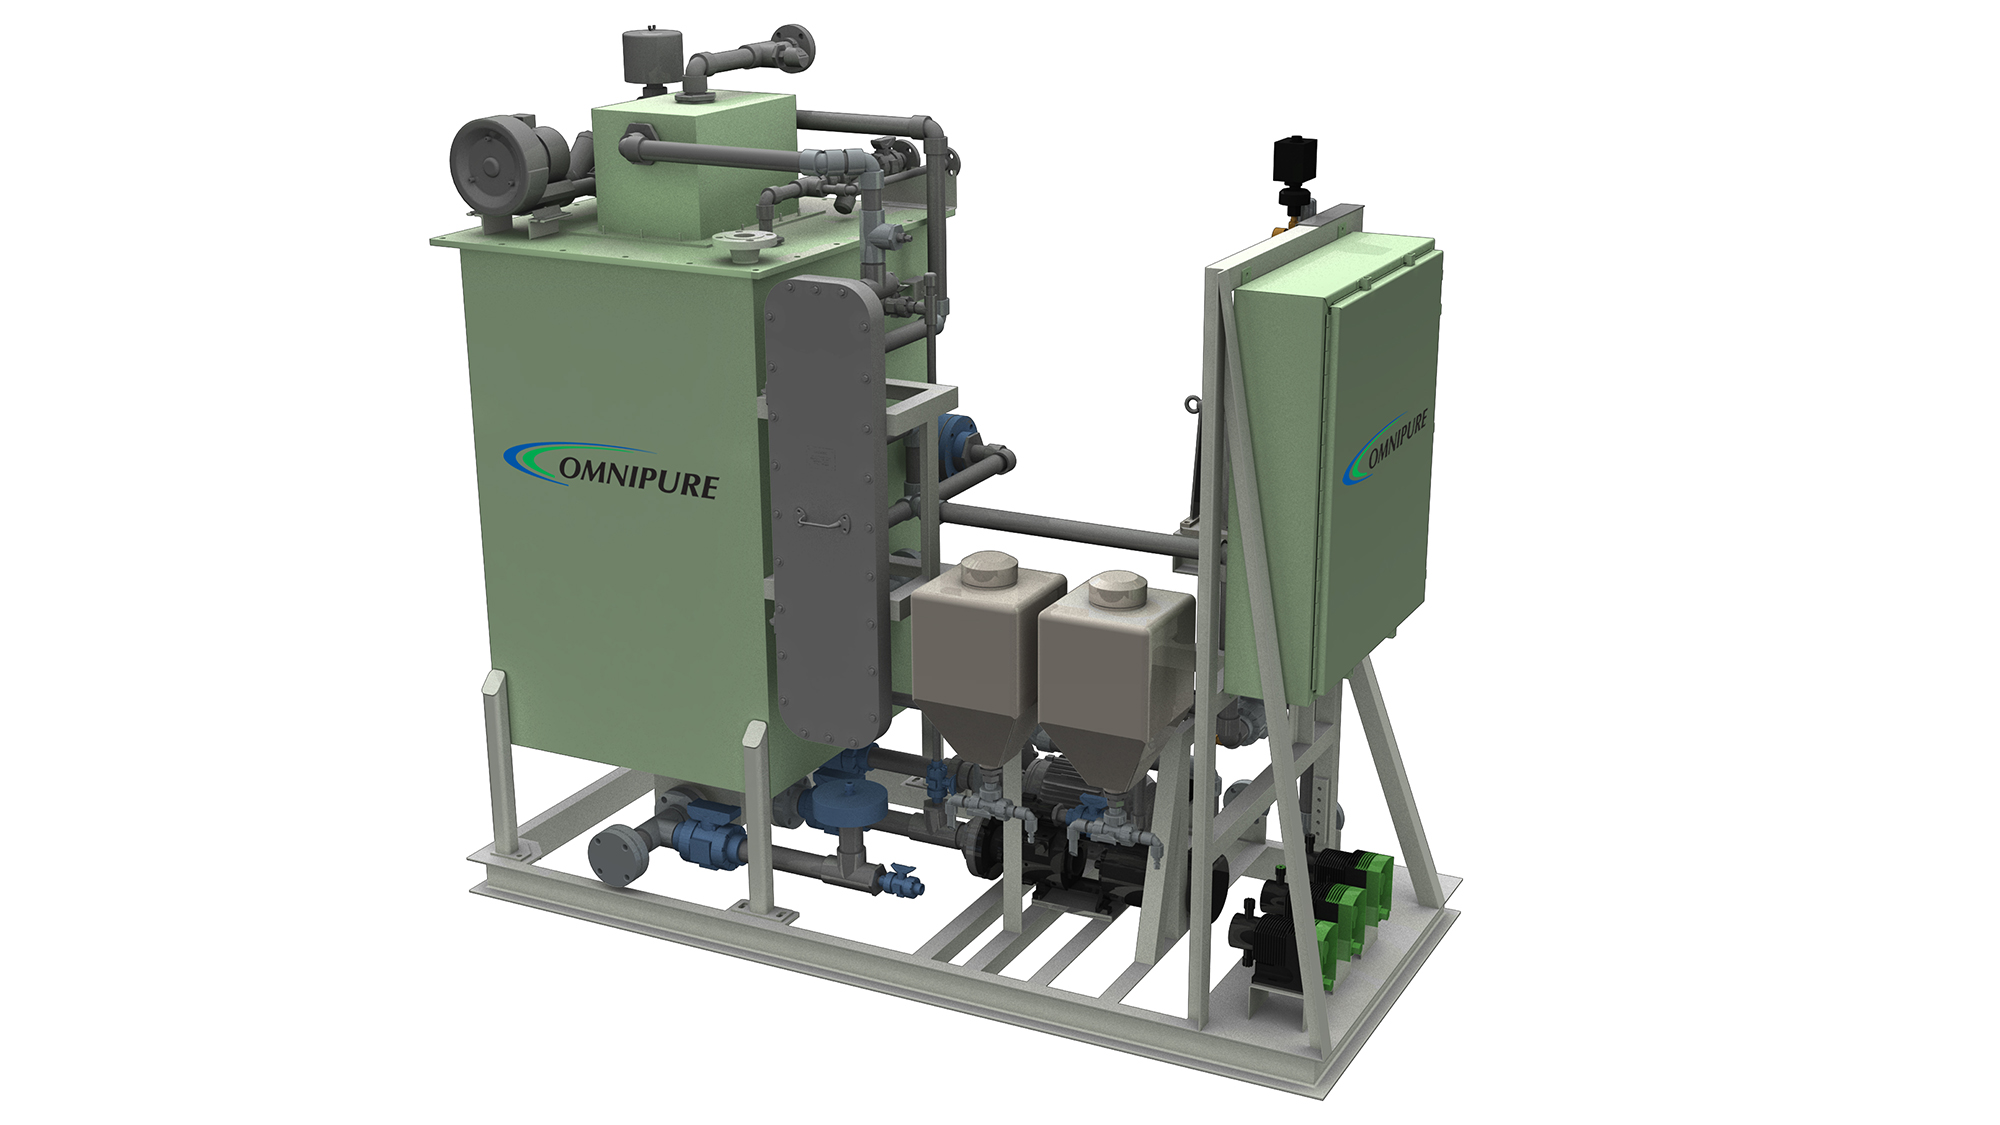 OMNIPURE™ Series 64 Marine Sewage Treatment System